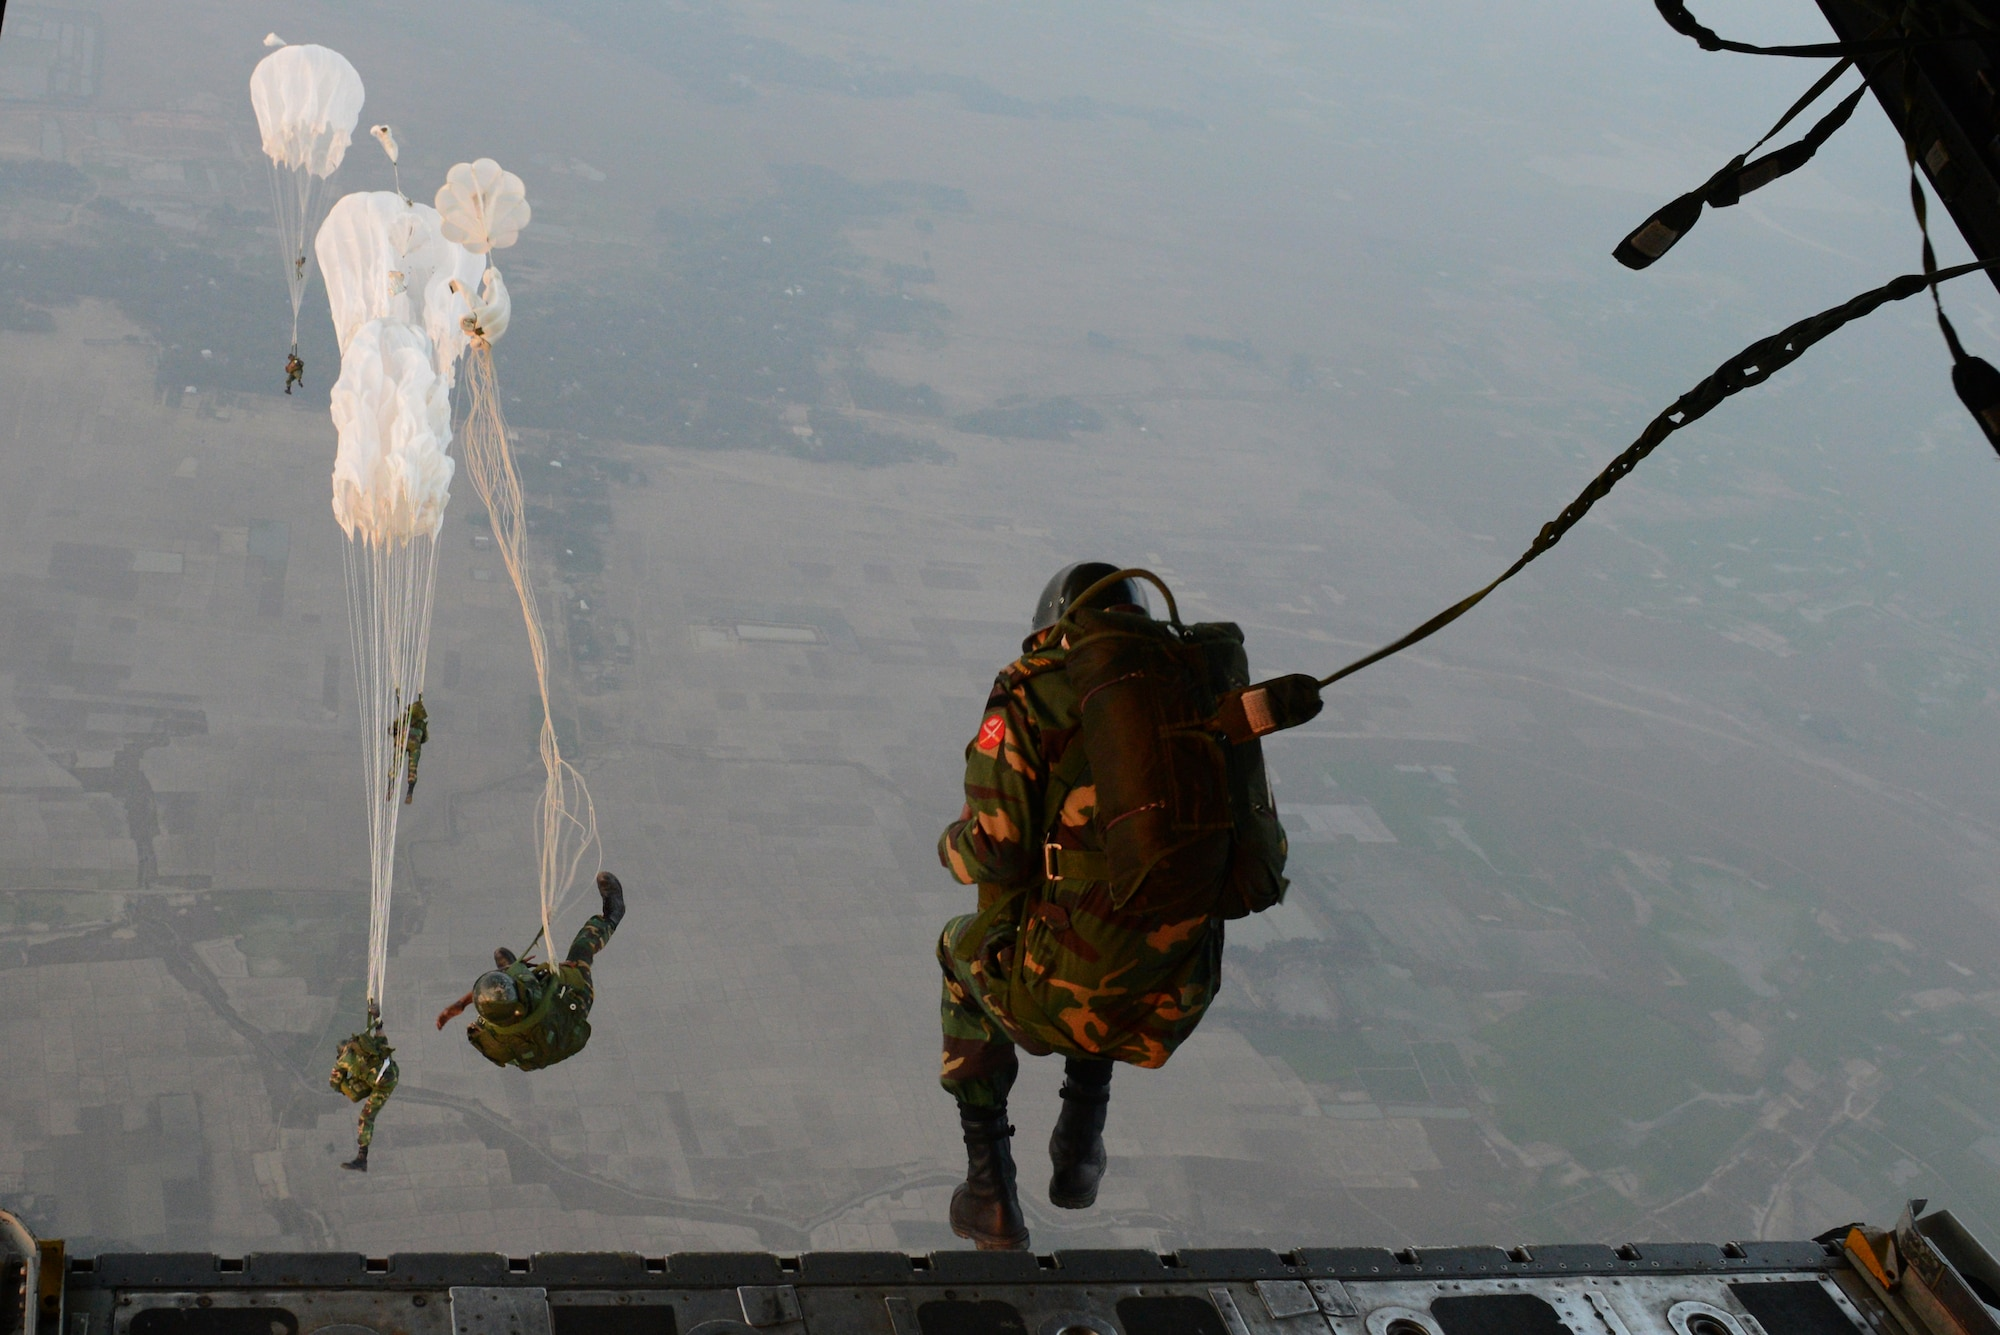 Bangladeshi commandos jump from a U.S. Air Force C-130H aircraft over a drop zone Jan. 24, 2015 during exercise Cope South near Sylhet, Bangladesh. Cope South helps cultivate common bonds, foster goodwill, and improve readiness and compatibility between members of the Bangladesh and U.S. Air Forces. (U.S. Air Force photo/1st Lt. Jake Bailey)